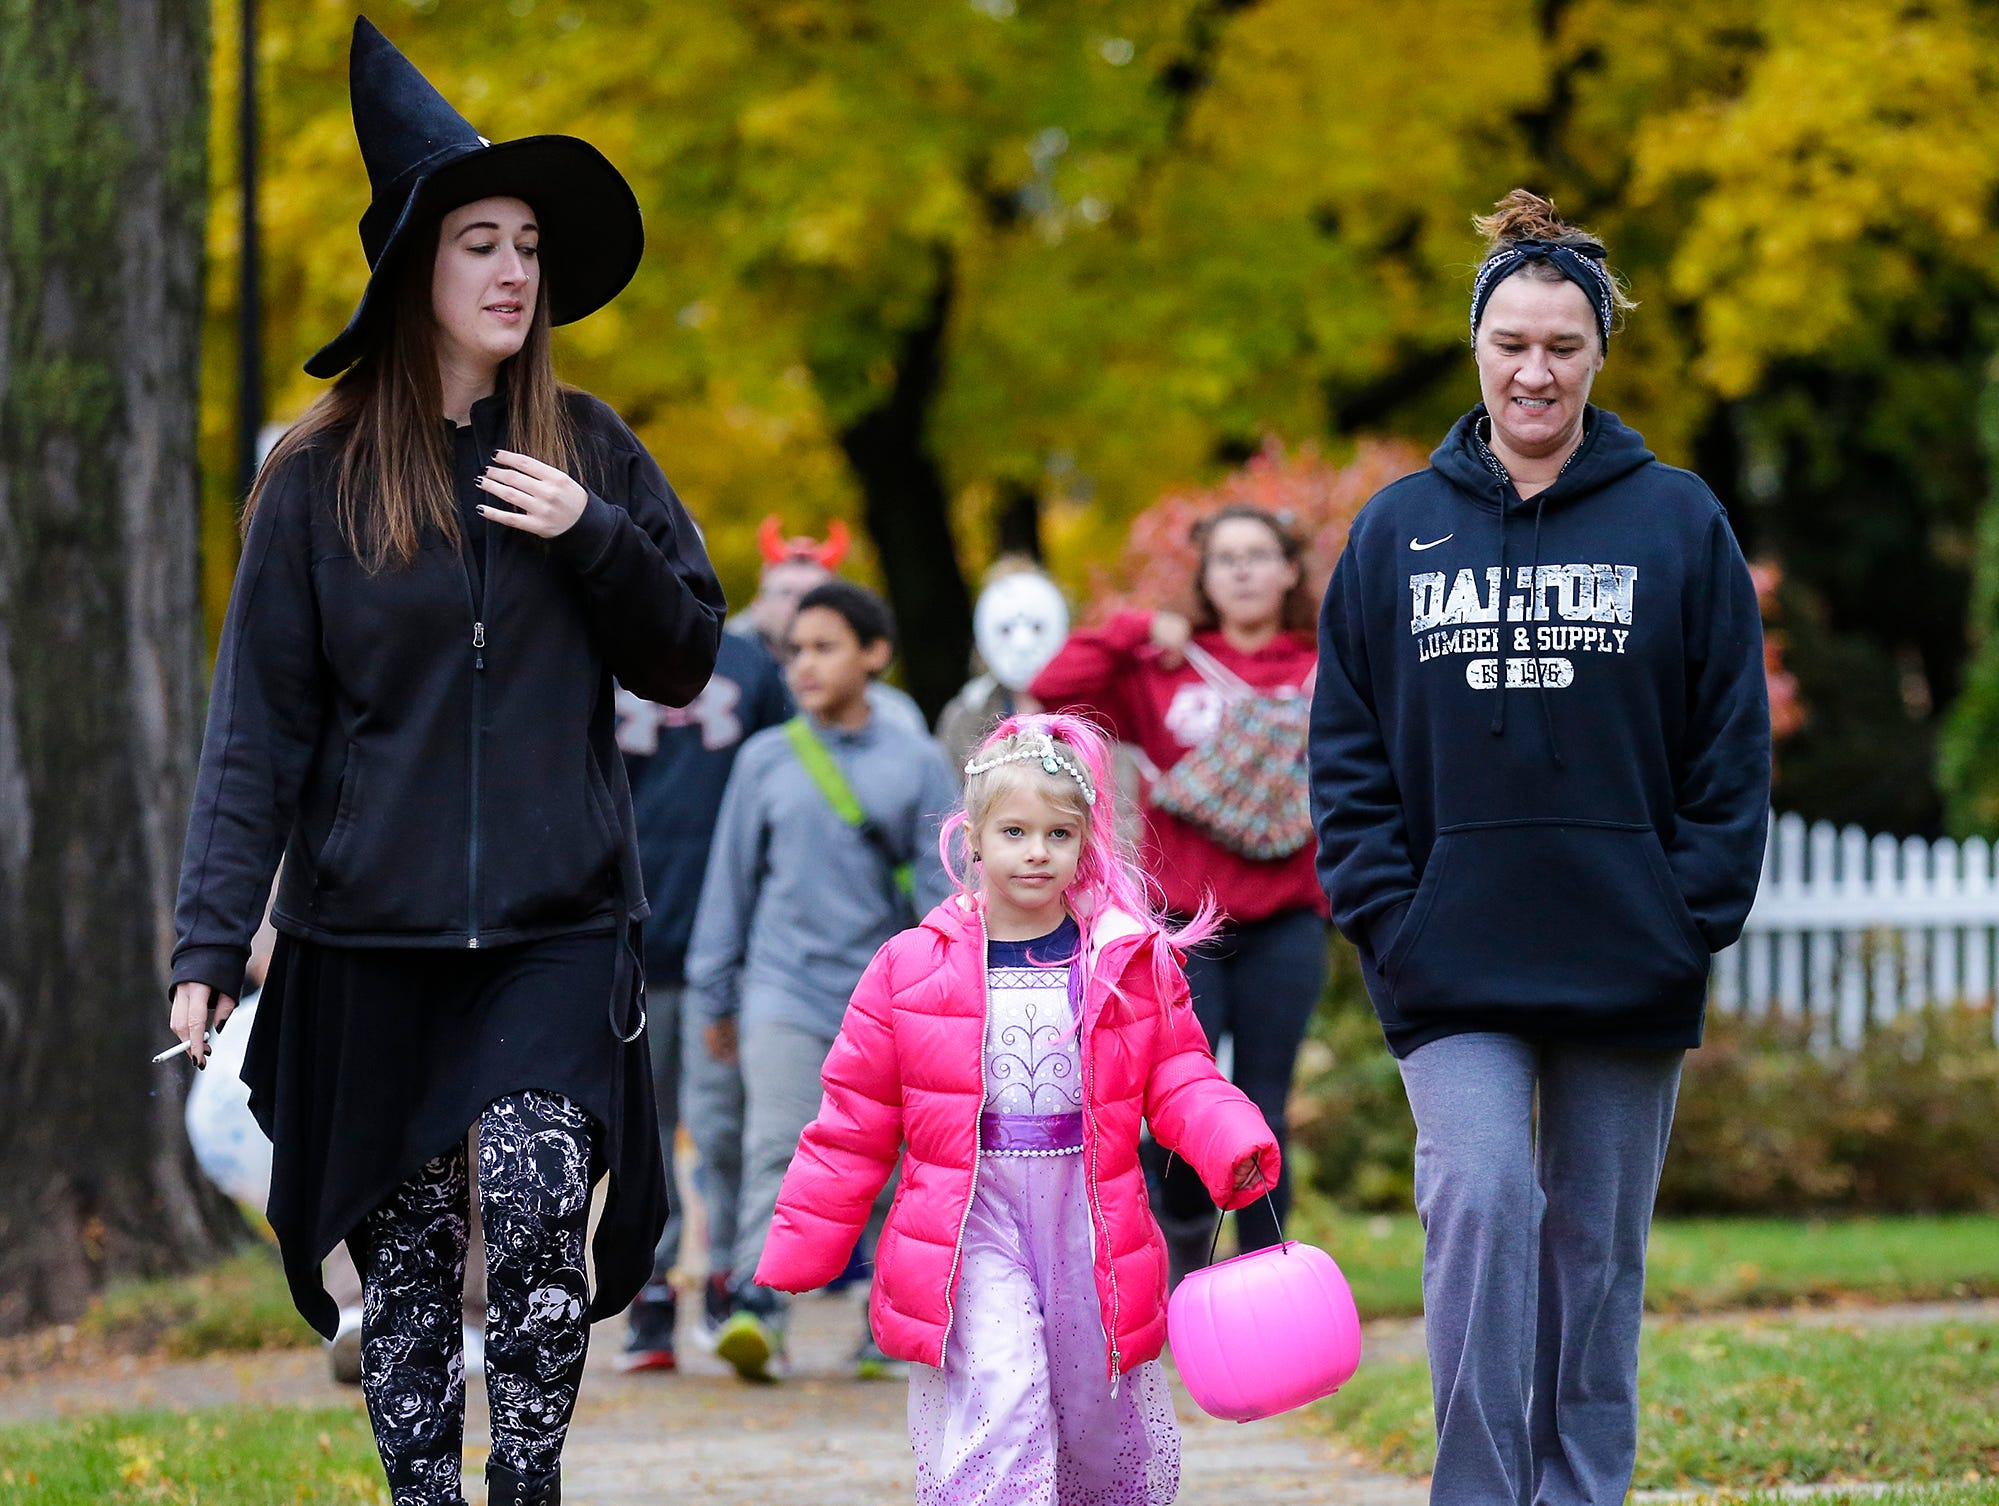 Brooke Siewert and Evelyn Kreuziger of Waupun and Shelley Bloch of Fond du Lac were out trick or treating Sunday, October 28, 2018 in Fond du Lac, Wisconsin. Doug Raflik/USA TODAY NETWORK-Wisconsin